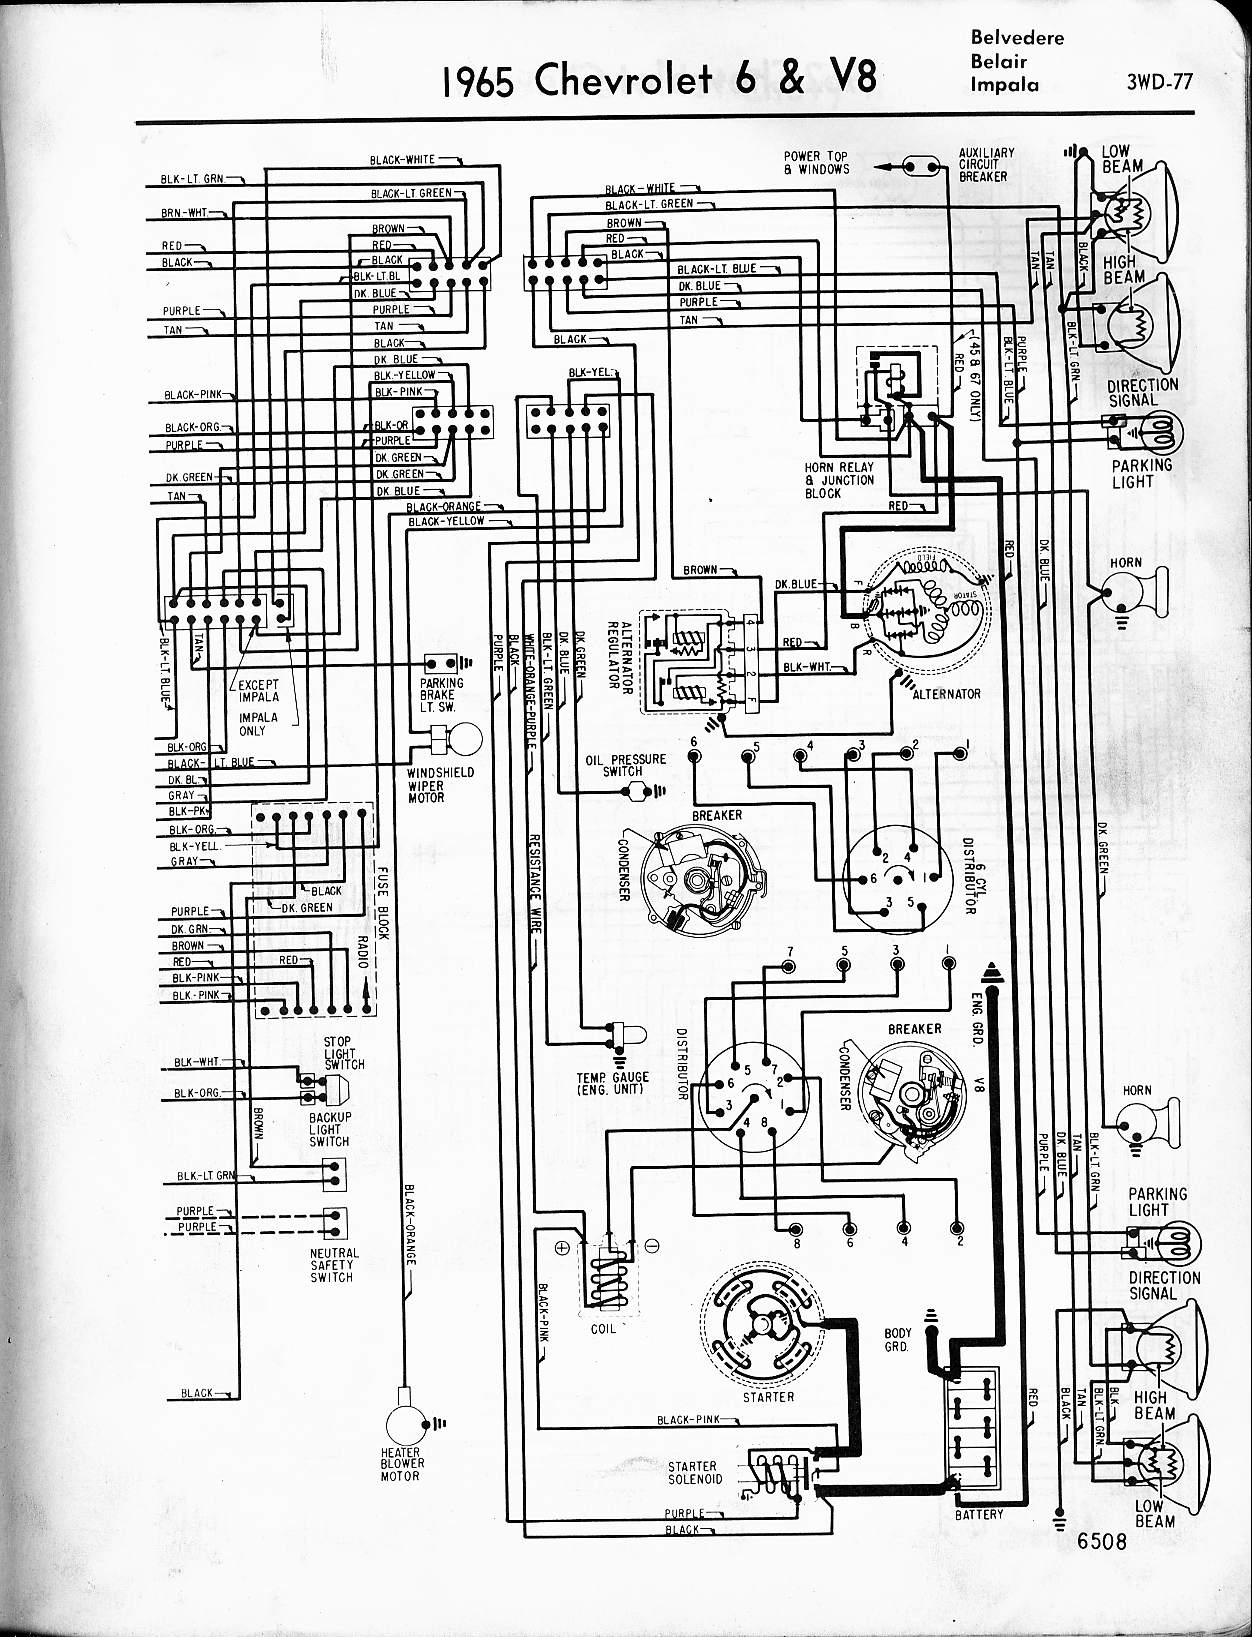 MWireChev65_3WD 077 1969 chevelle wiring diagram pdf 1969 thunderbird dash wiring 67 chevelle ignition switch wiring diagram at edmiracle.co